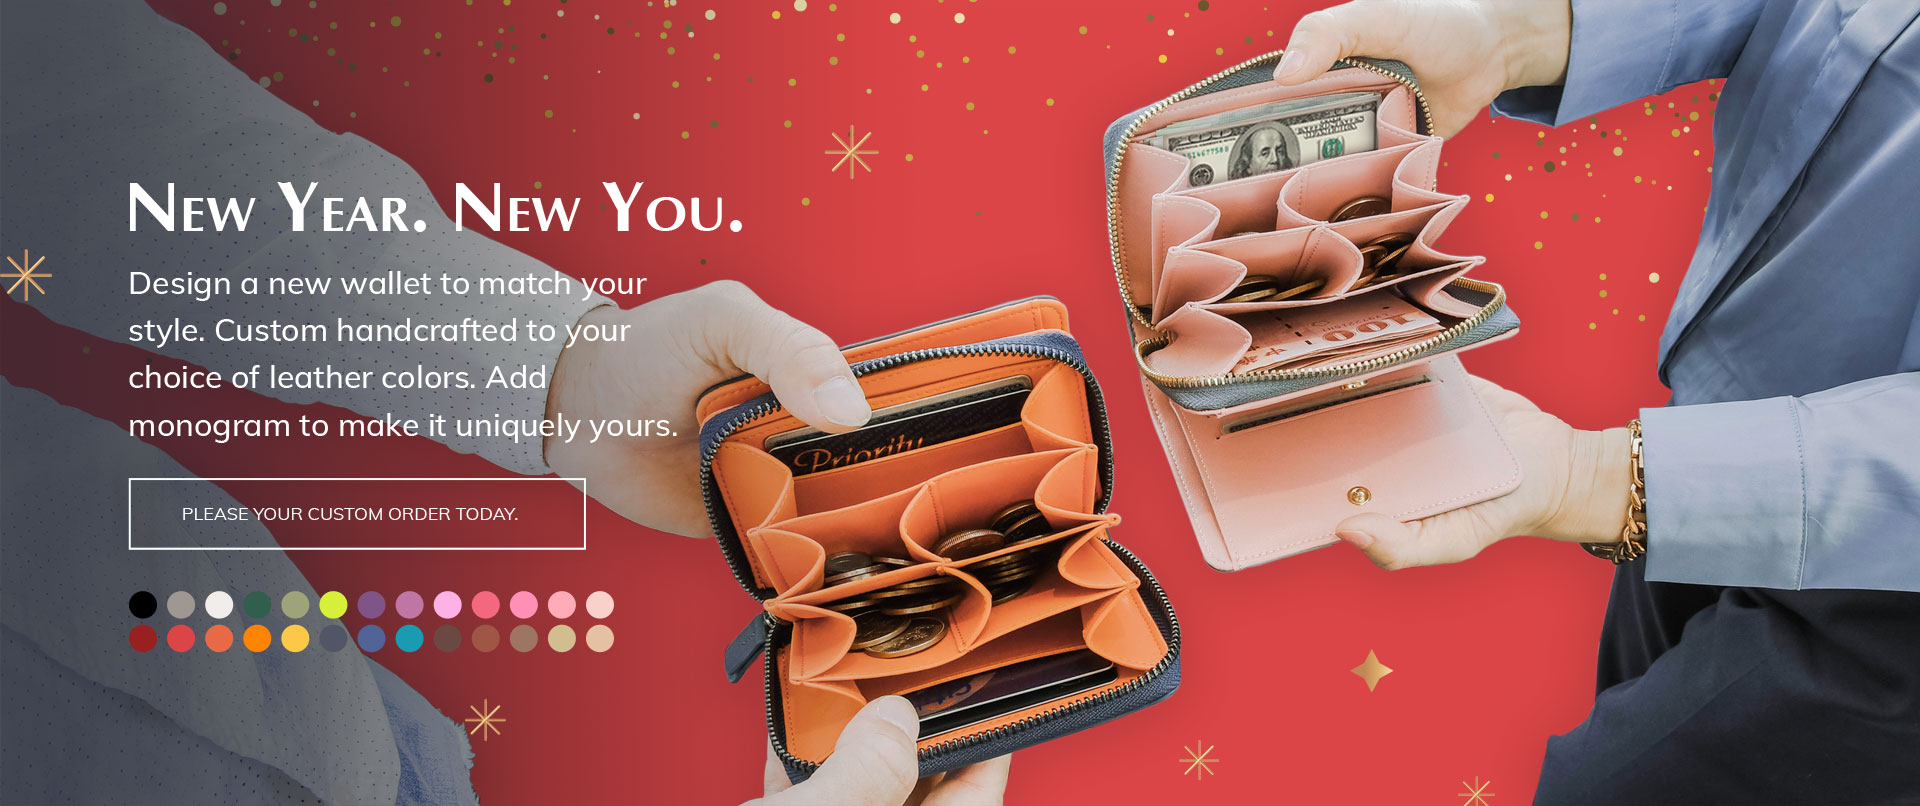 New Year. New Wallet. Design Yours Now